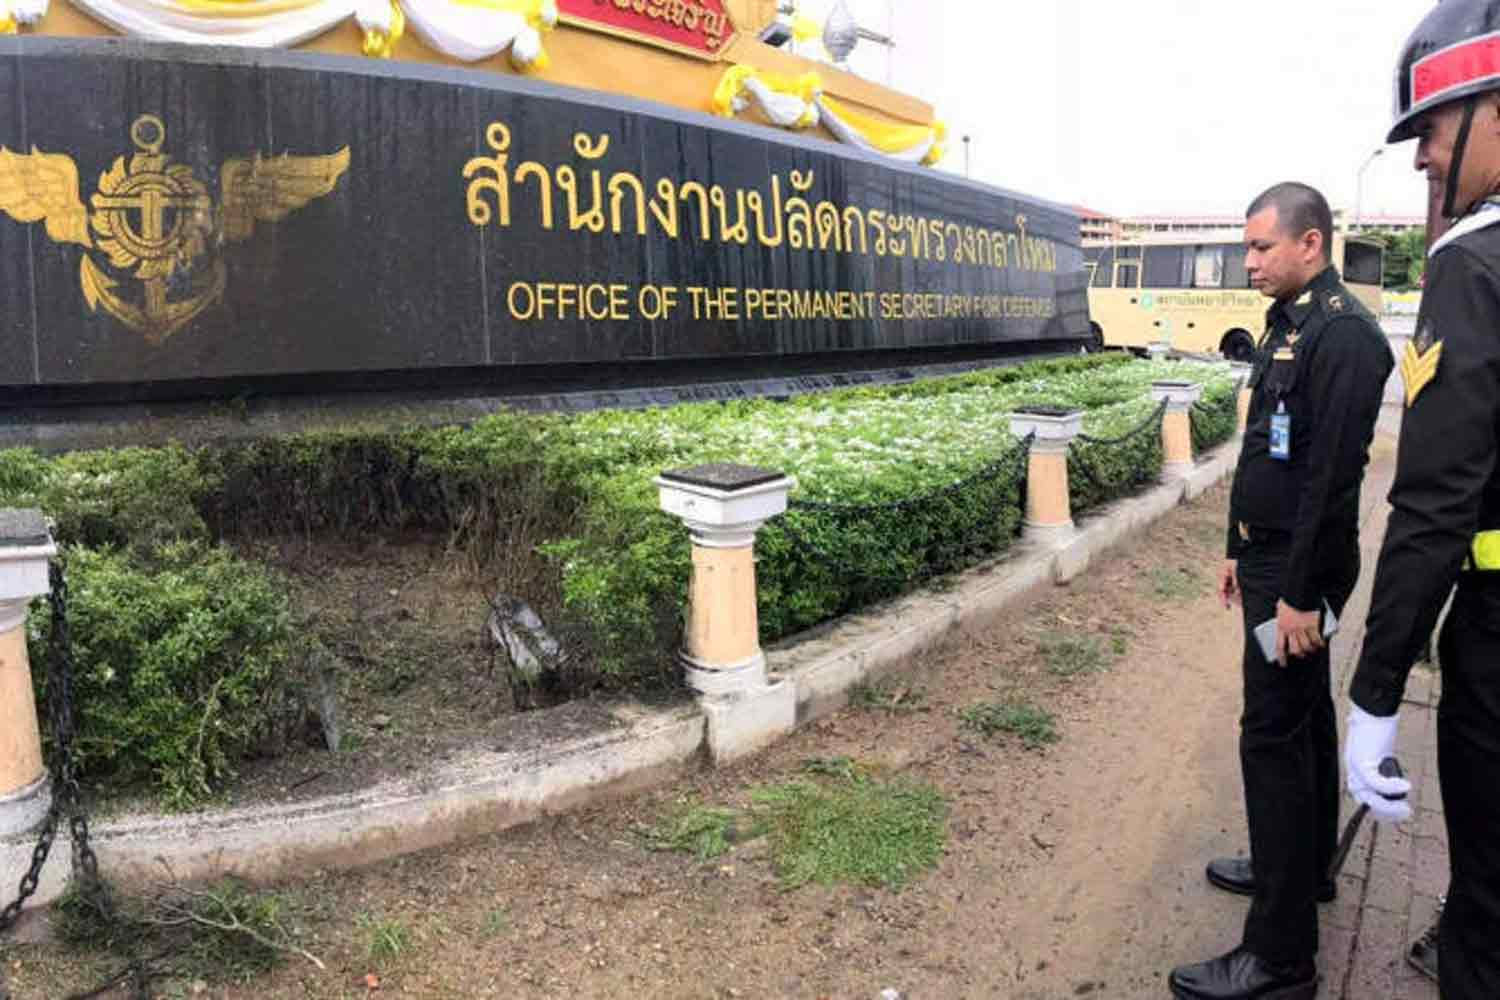 Officers inspect a blast site in front of the Office of the Permanent Secretary for Defence in Don Muang district, Bangkok, last Friday. (Photo supplied)